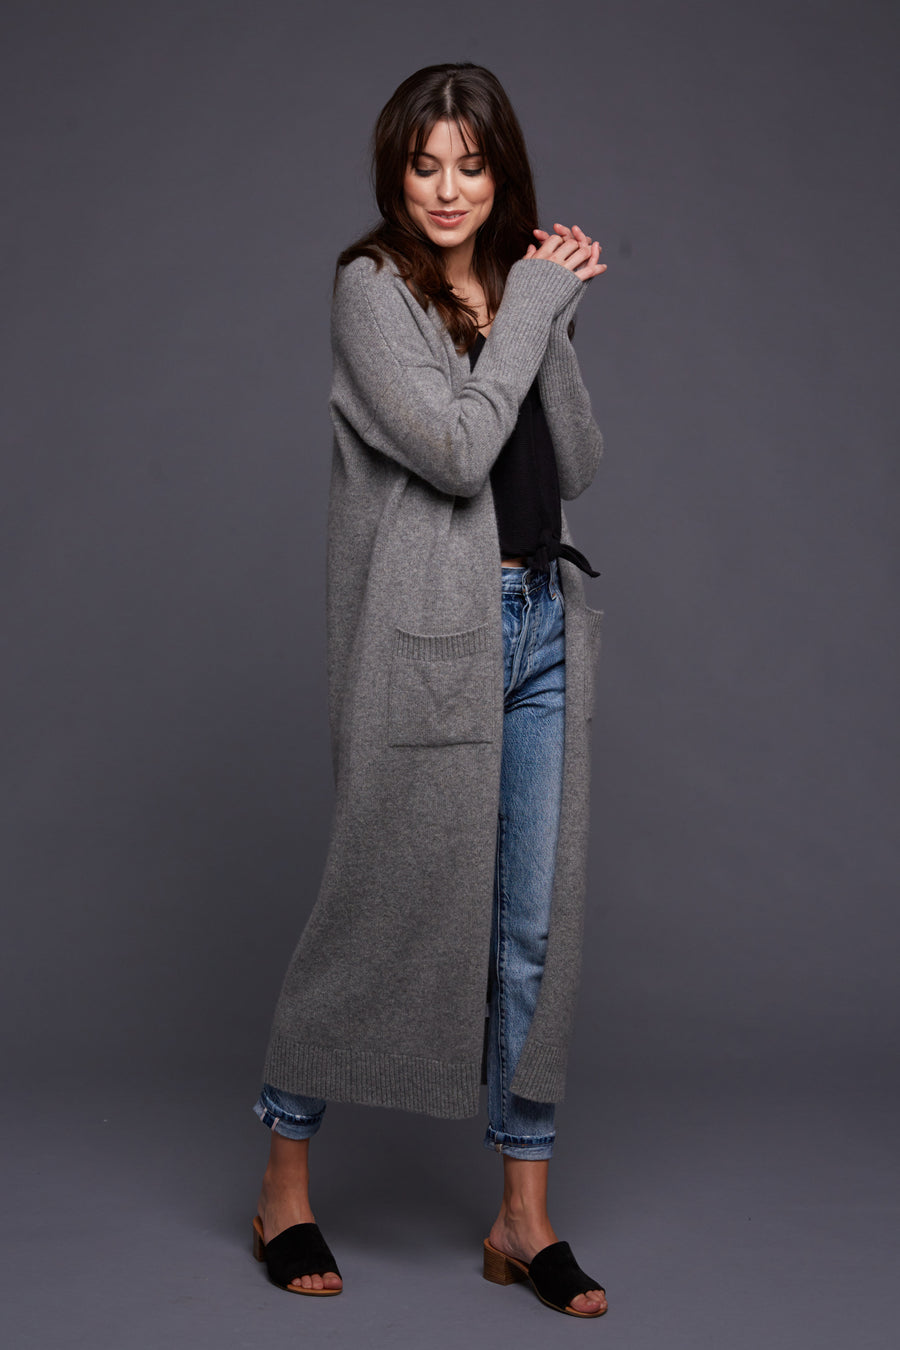 pine cashmere stella women's cashmere wool blend long cardigan coat duster in medium grey